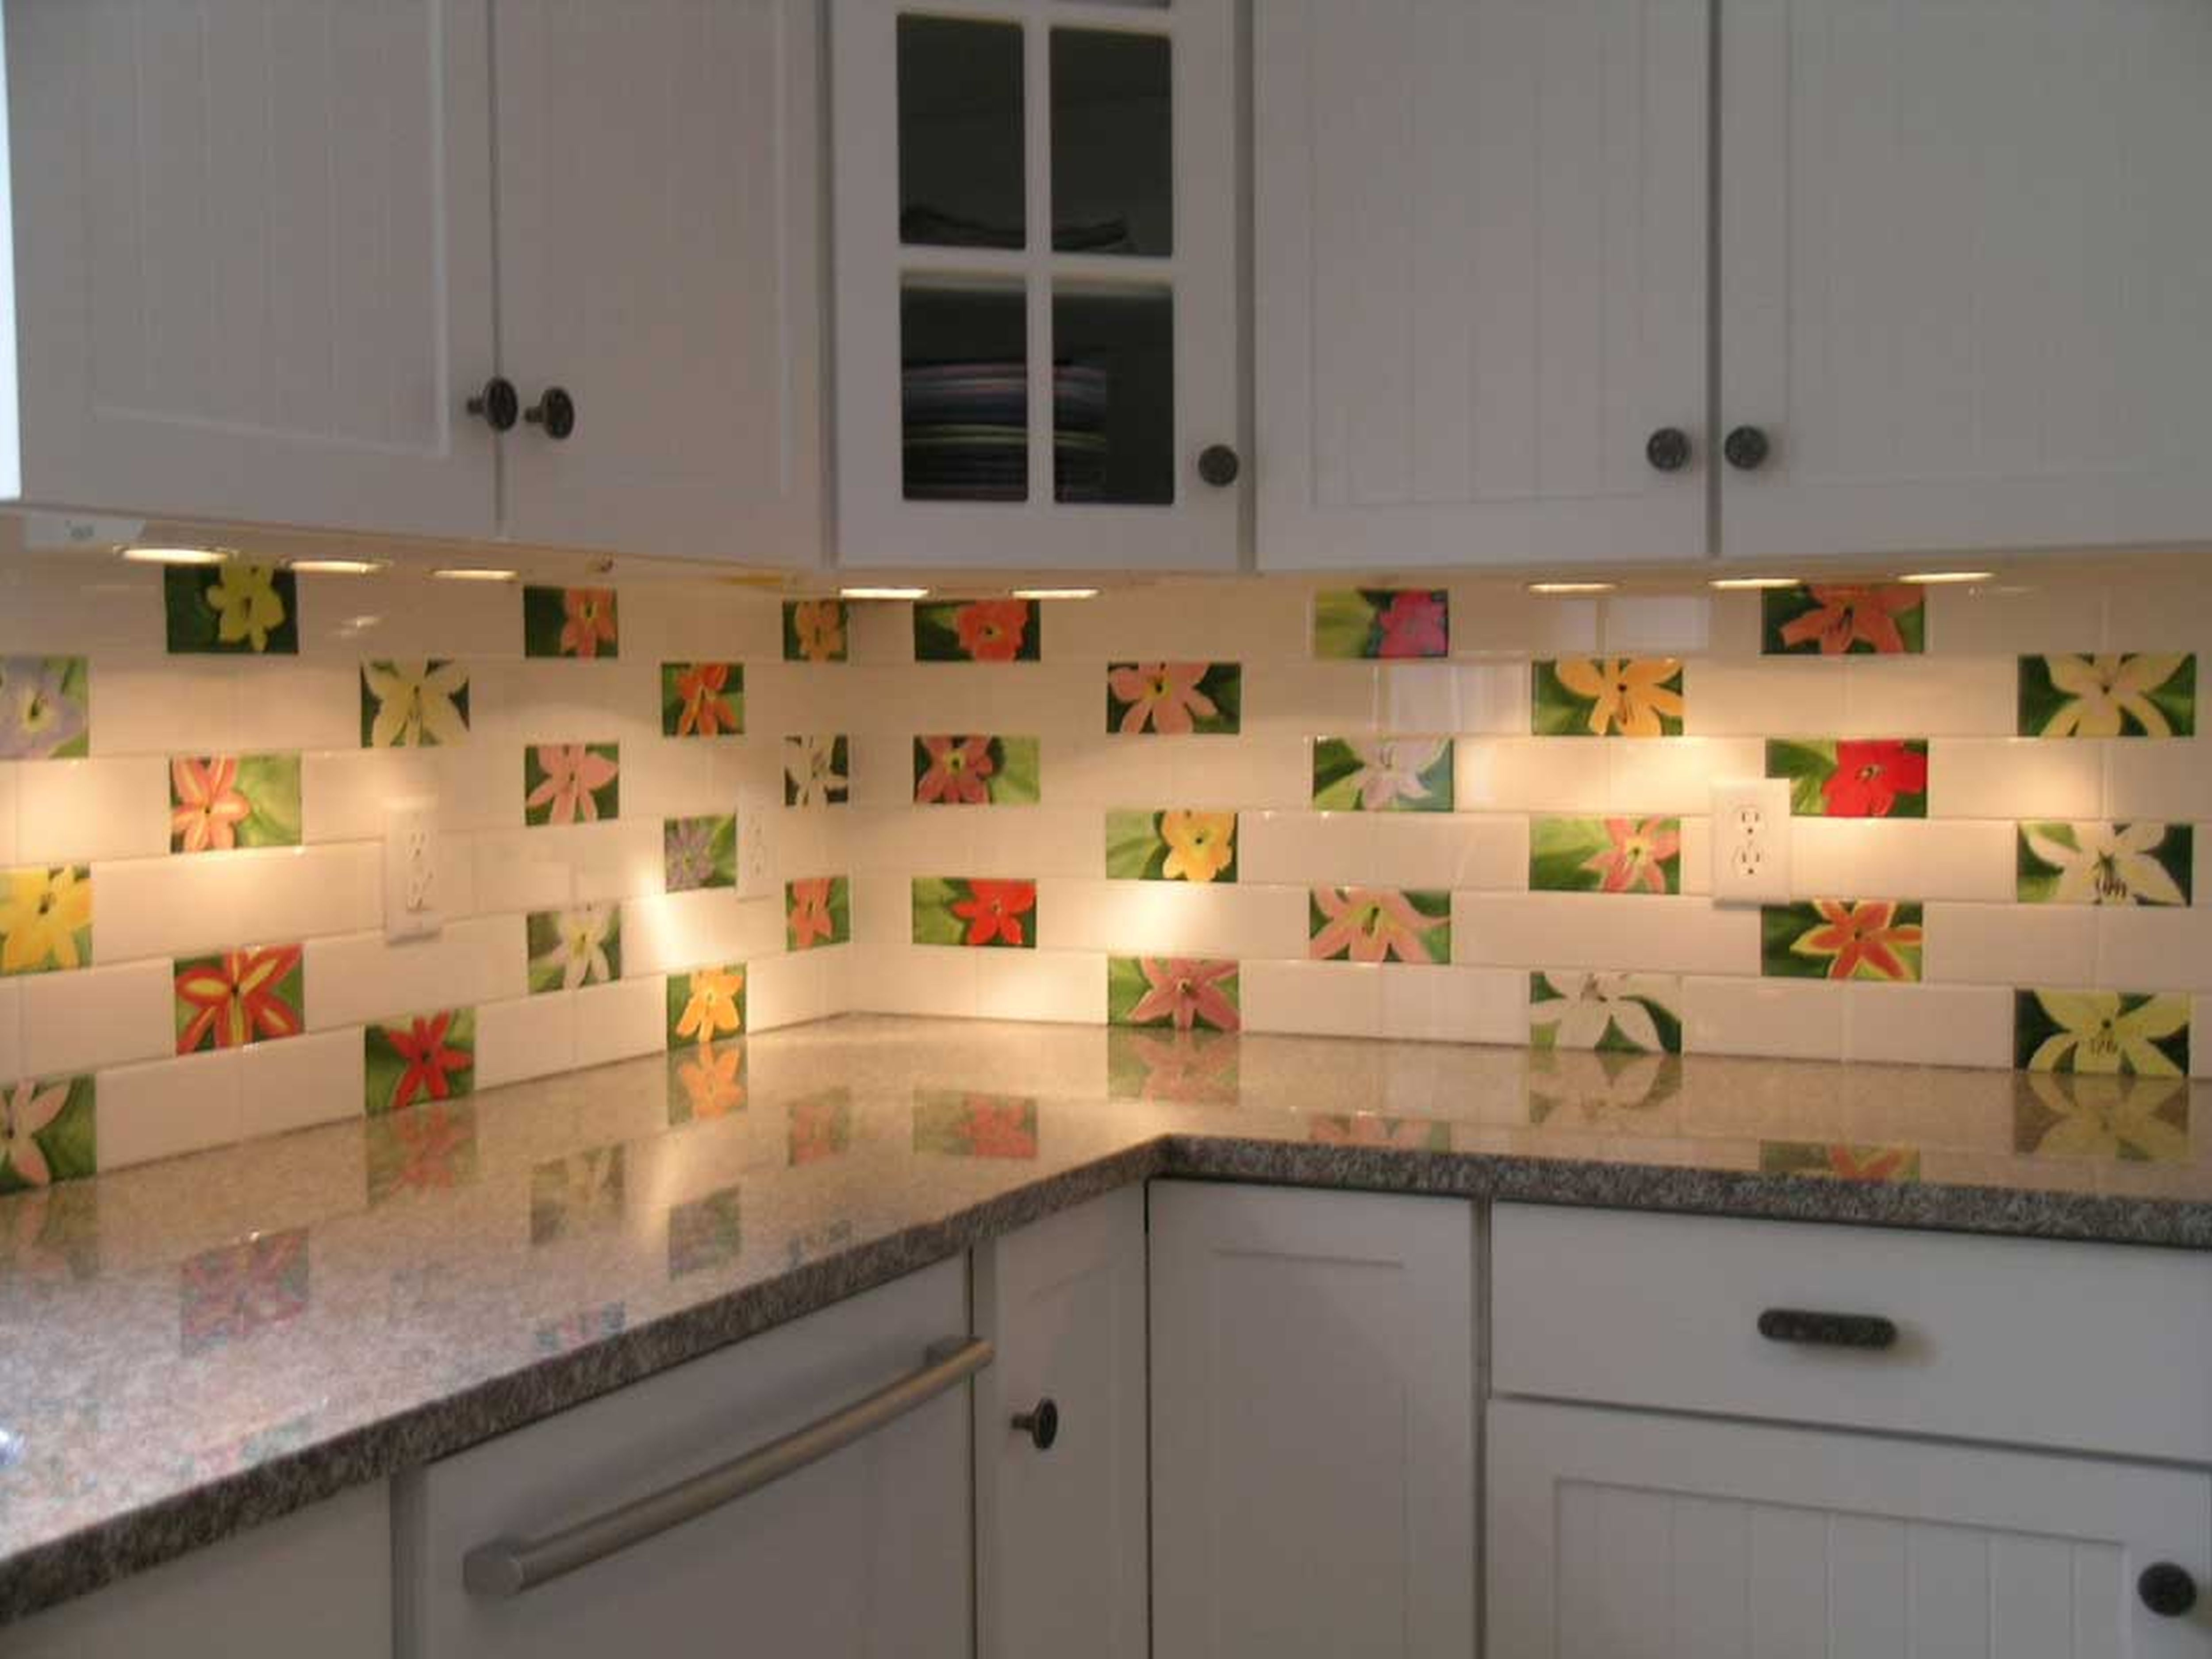 Chic Tiles In The Blink Of An Eye Kitchen Tiles Design Ideas